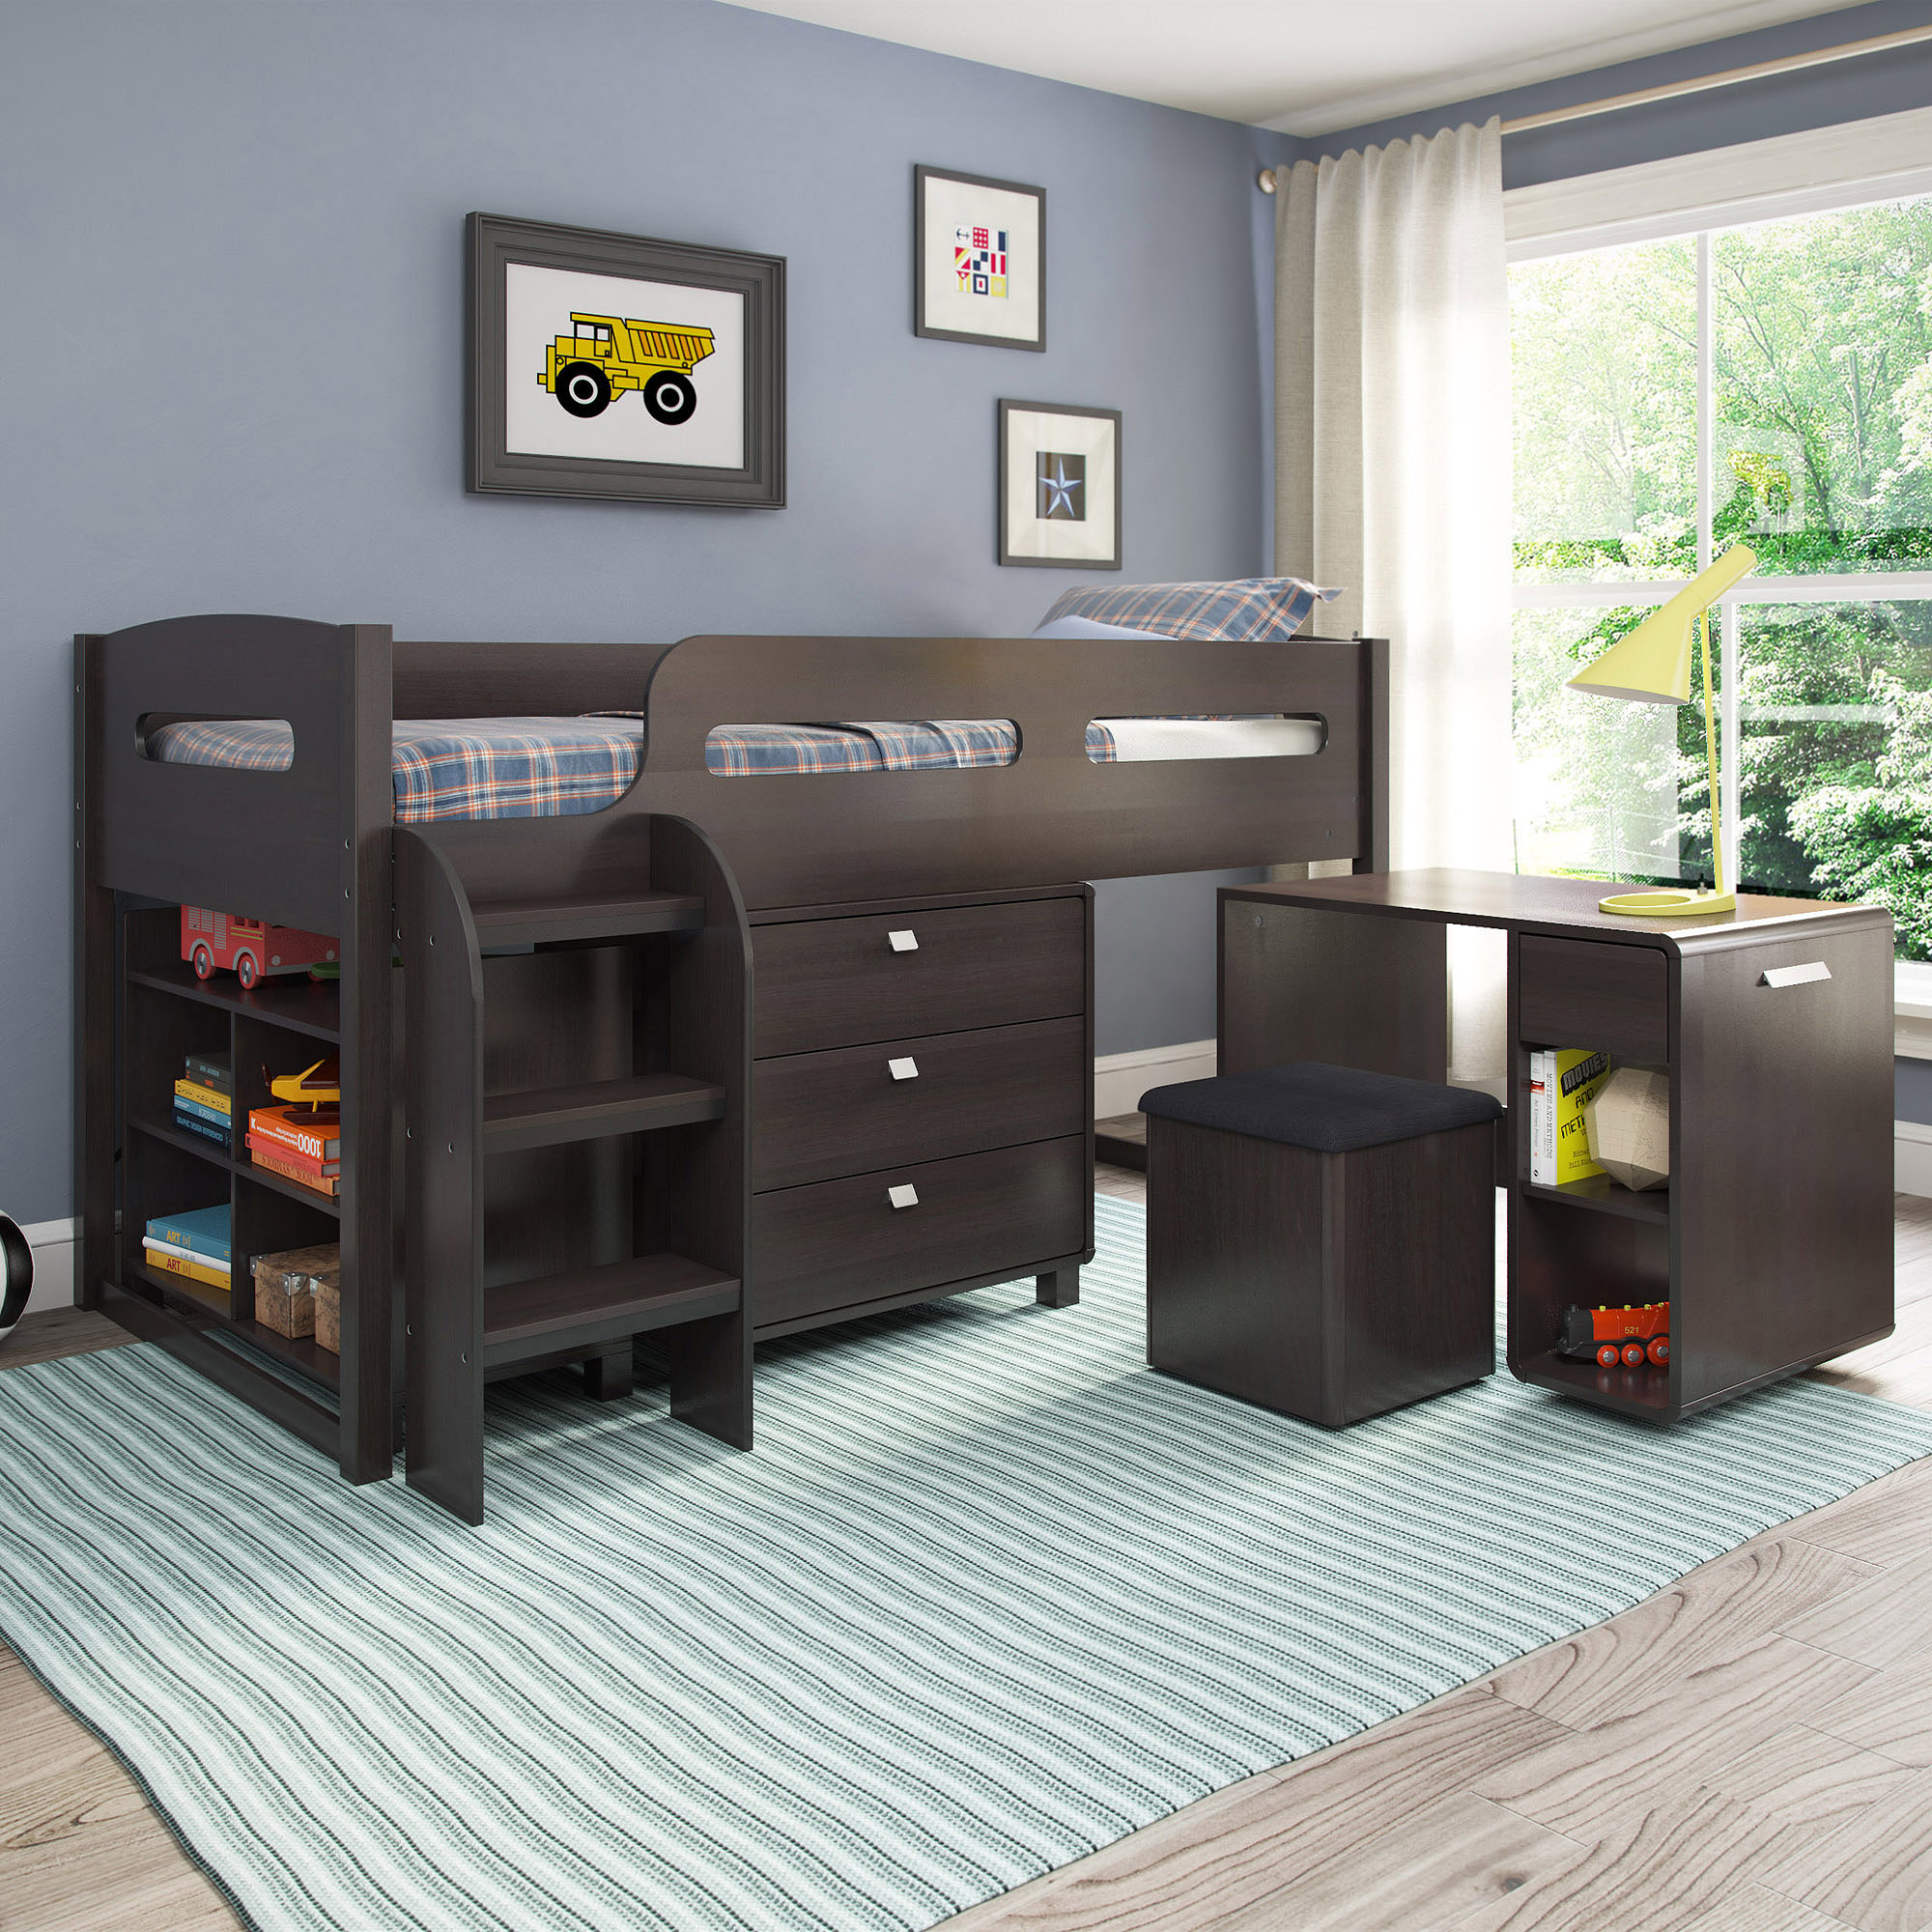 Twin loft bed with storage - Corliving Madison 5 Piece All In One Twin Loft Bed Multiple Colors Walmart Com